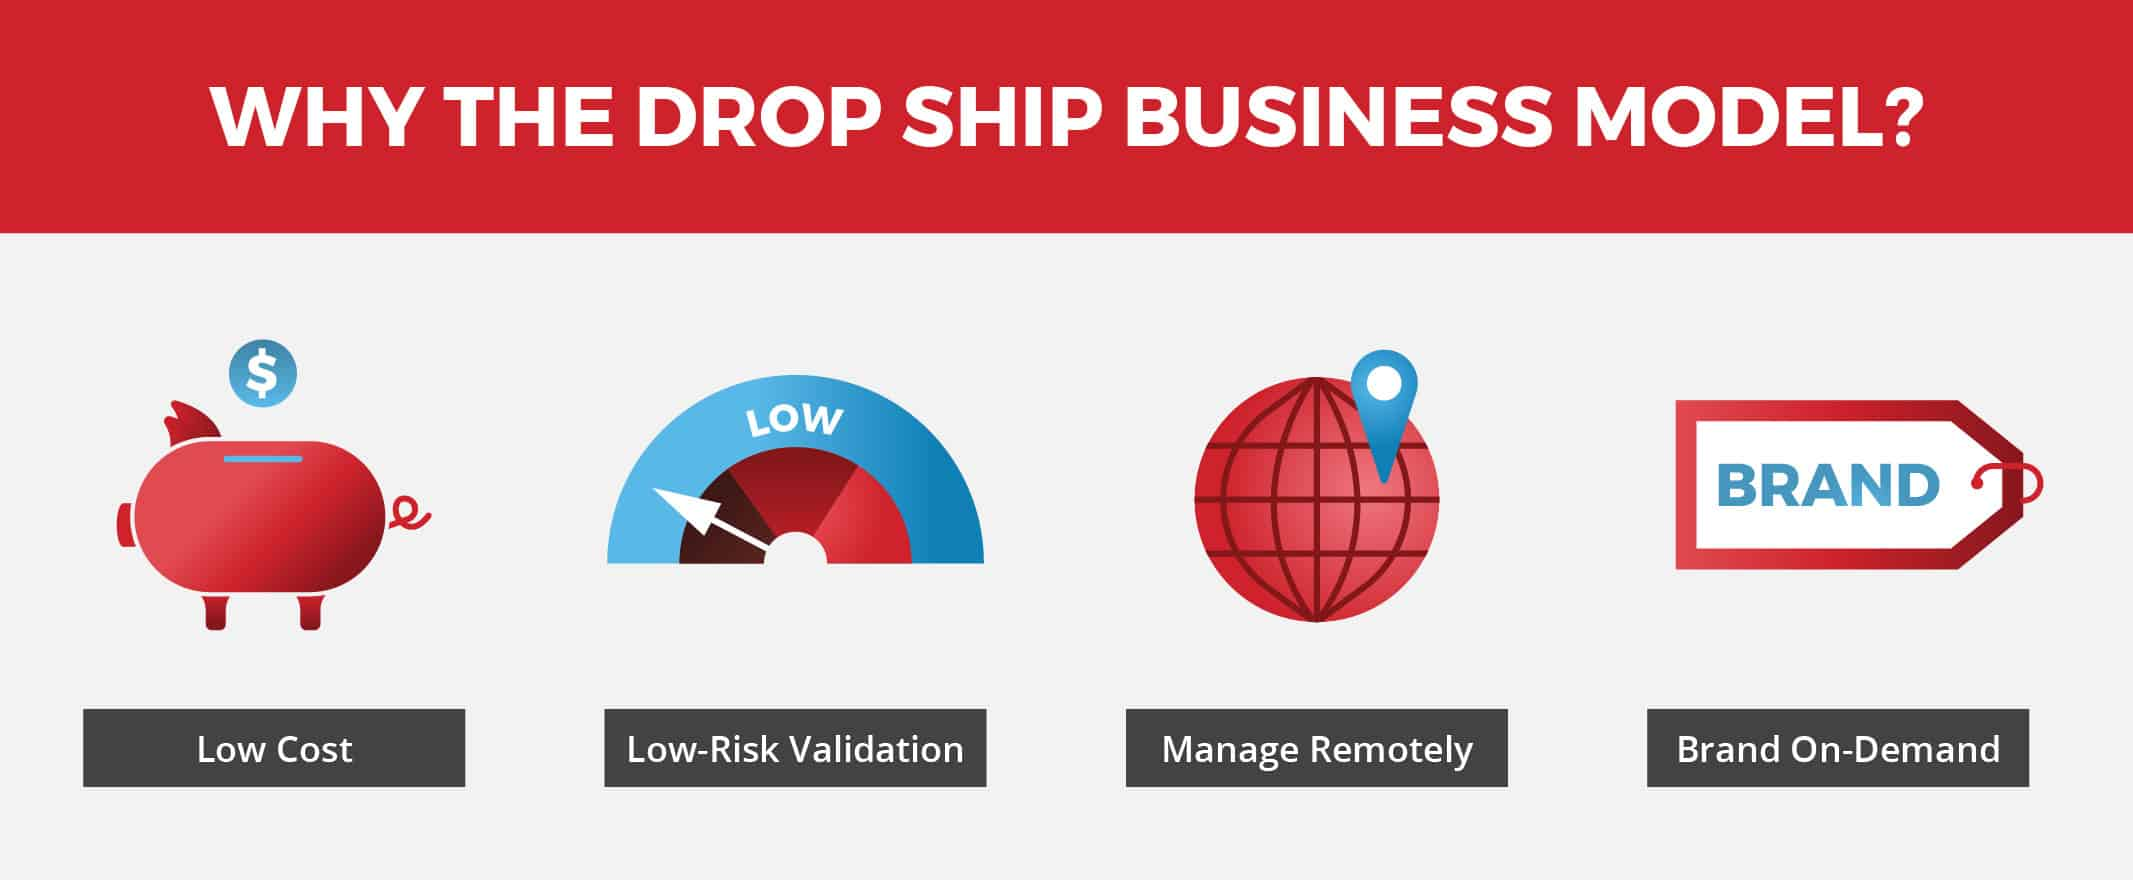 Drop ship business model